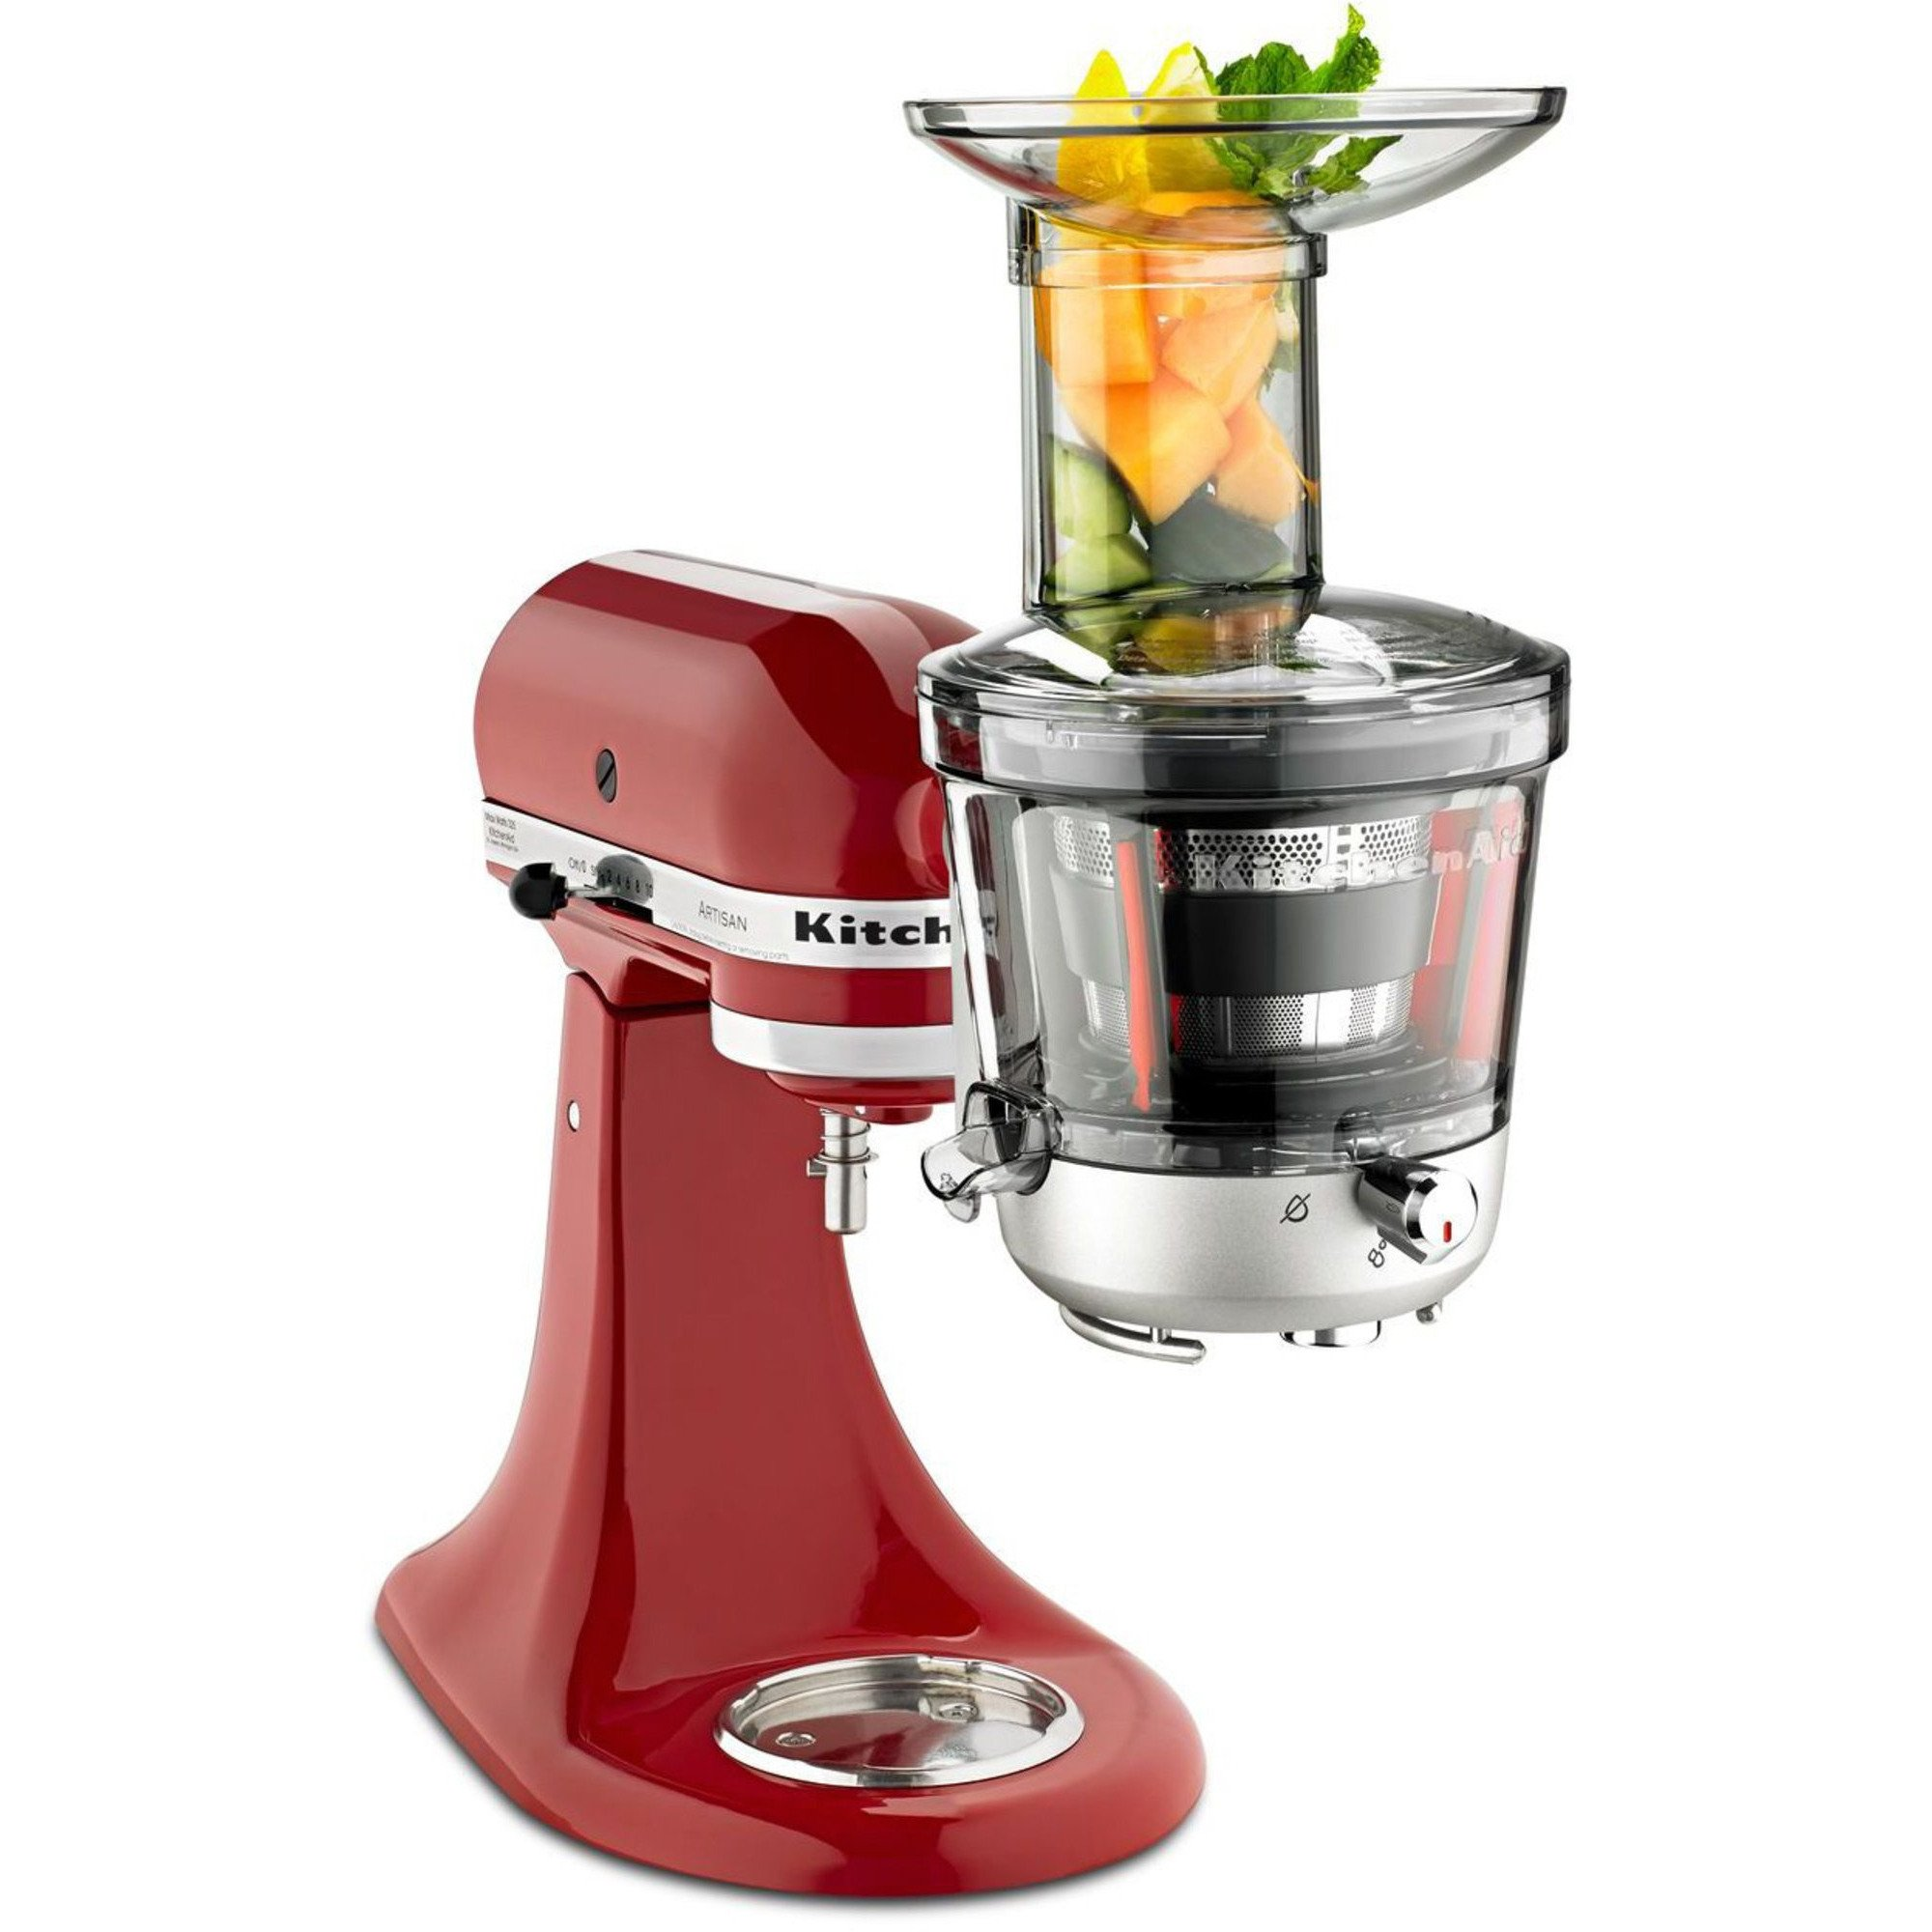 Kitchenaid Slowjuicer Recepten : SM1JA Slow Juicer fra KitchenAid Slow Juicer tilbehor til KitchenAid